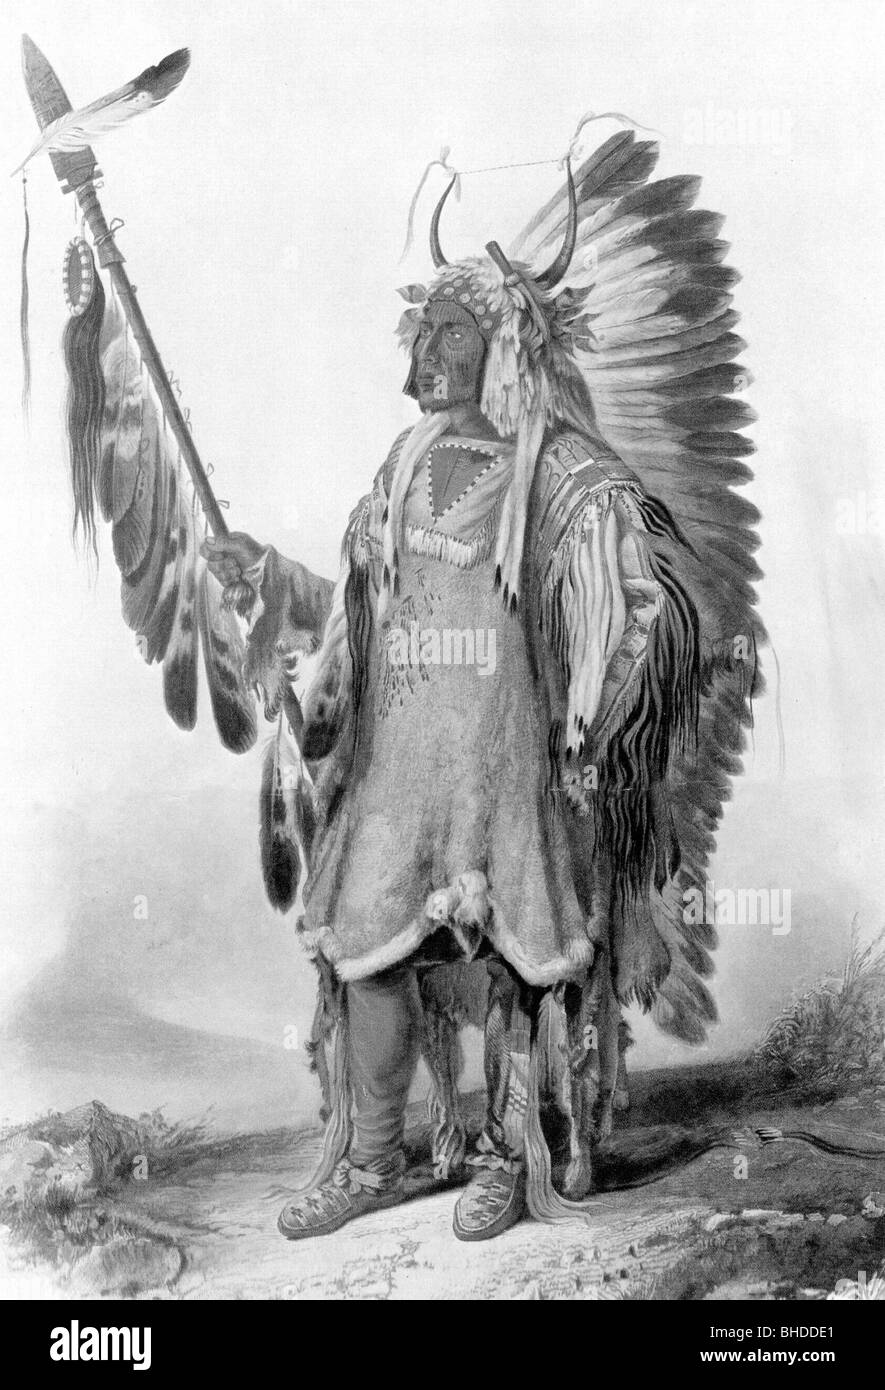 geography / travel, United States of America, American Indians, Mato Topah, circa 1800 - 30.7.1837, chieftain of - Stock Image